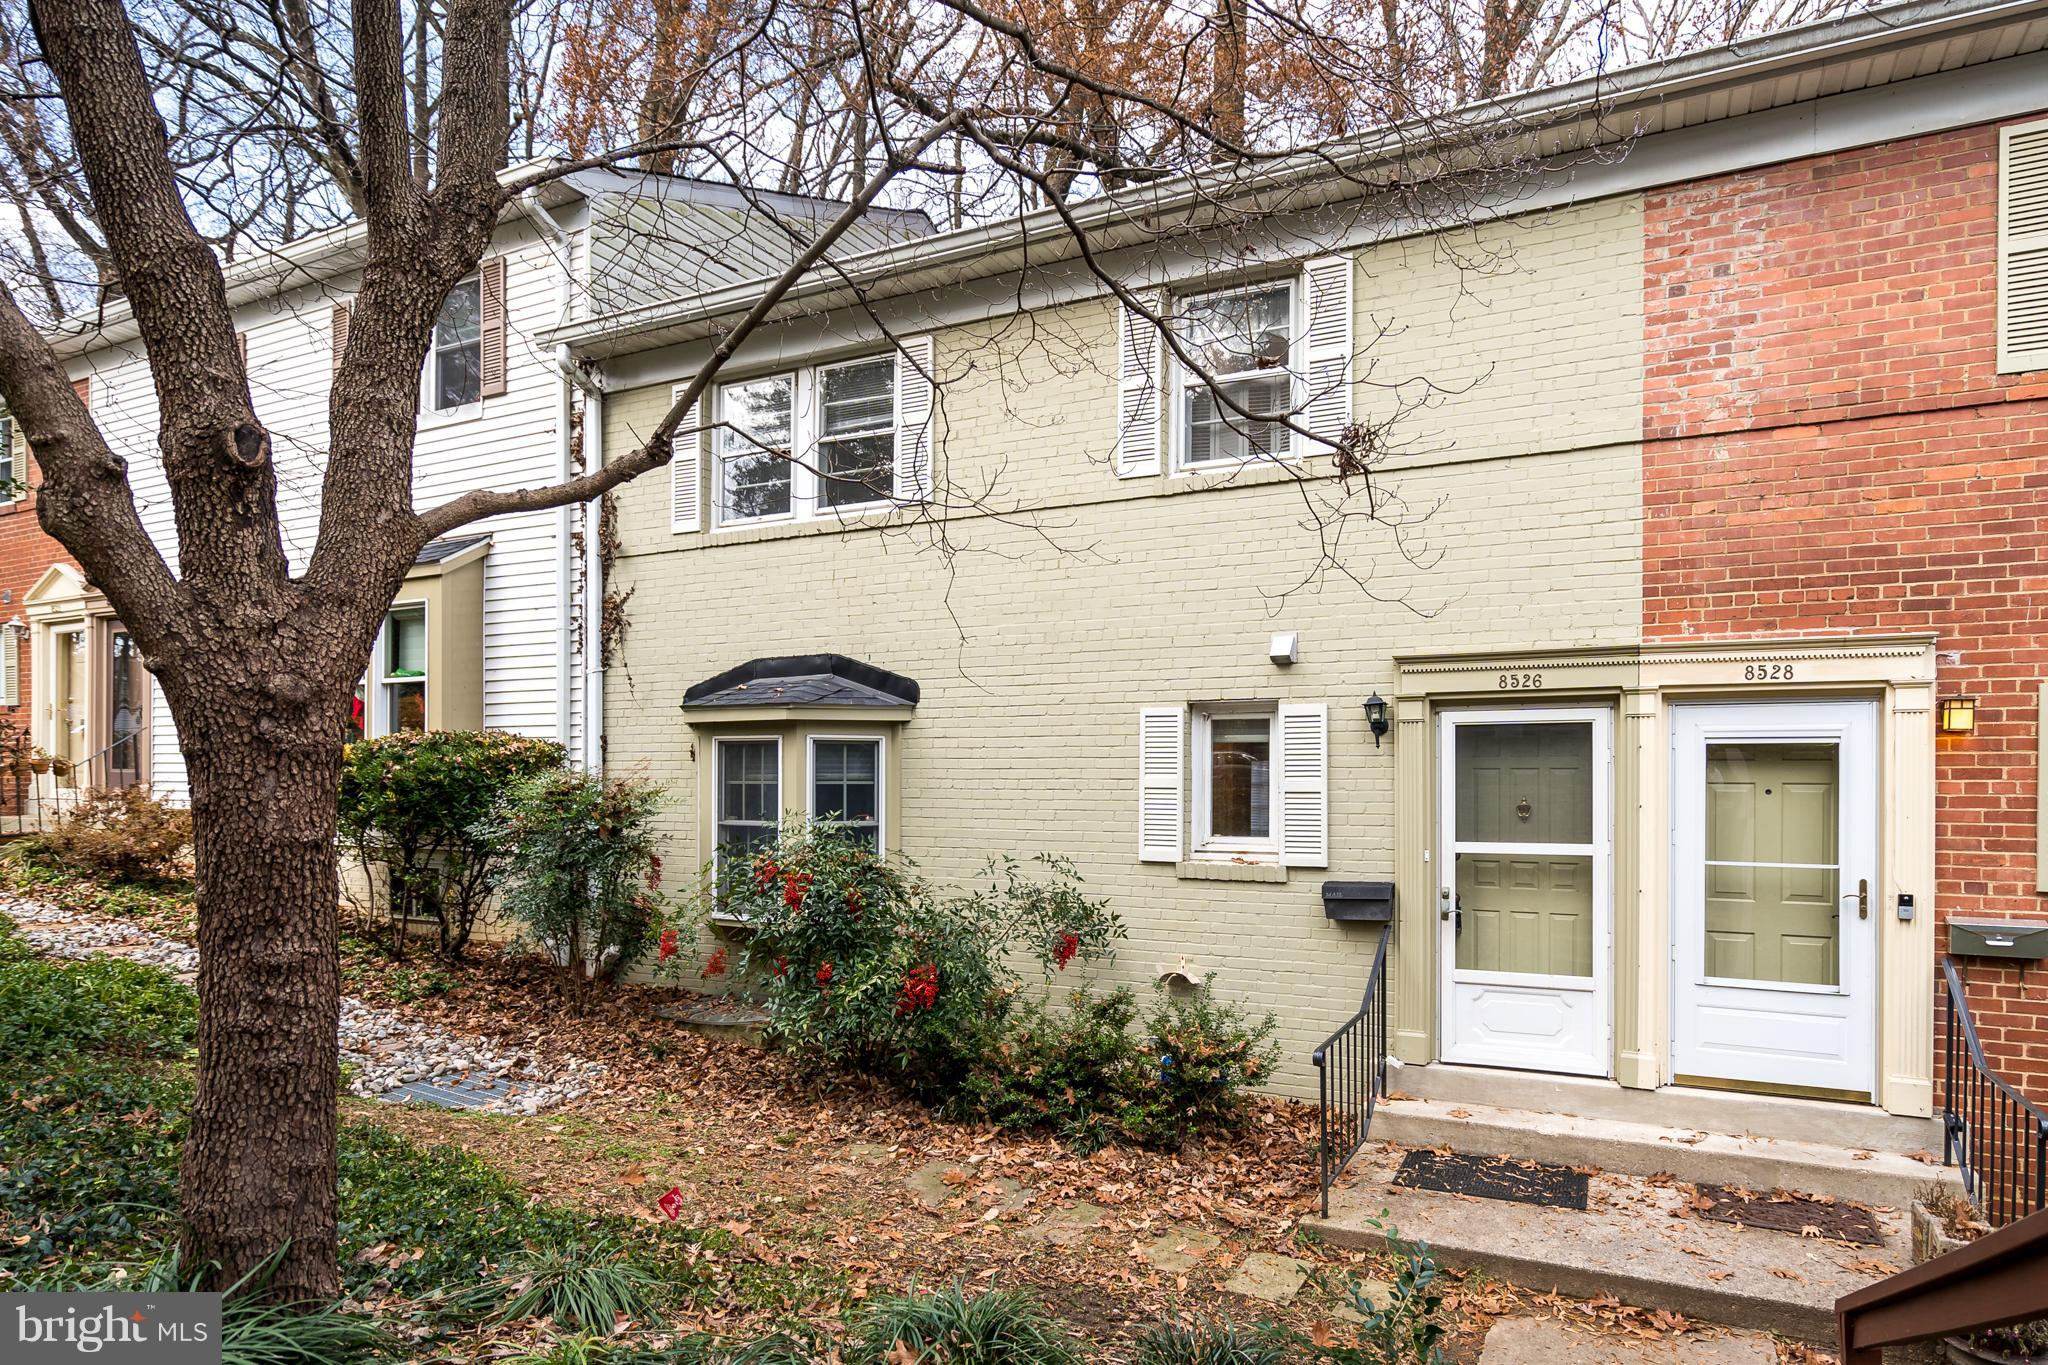 Introducing this beautiful and spacious 2 bedroom, 2.5 bath townhouse in park-like Top of the Park c